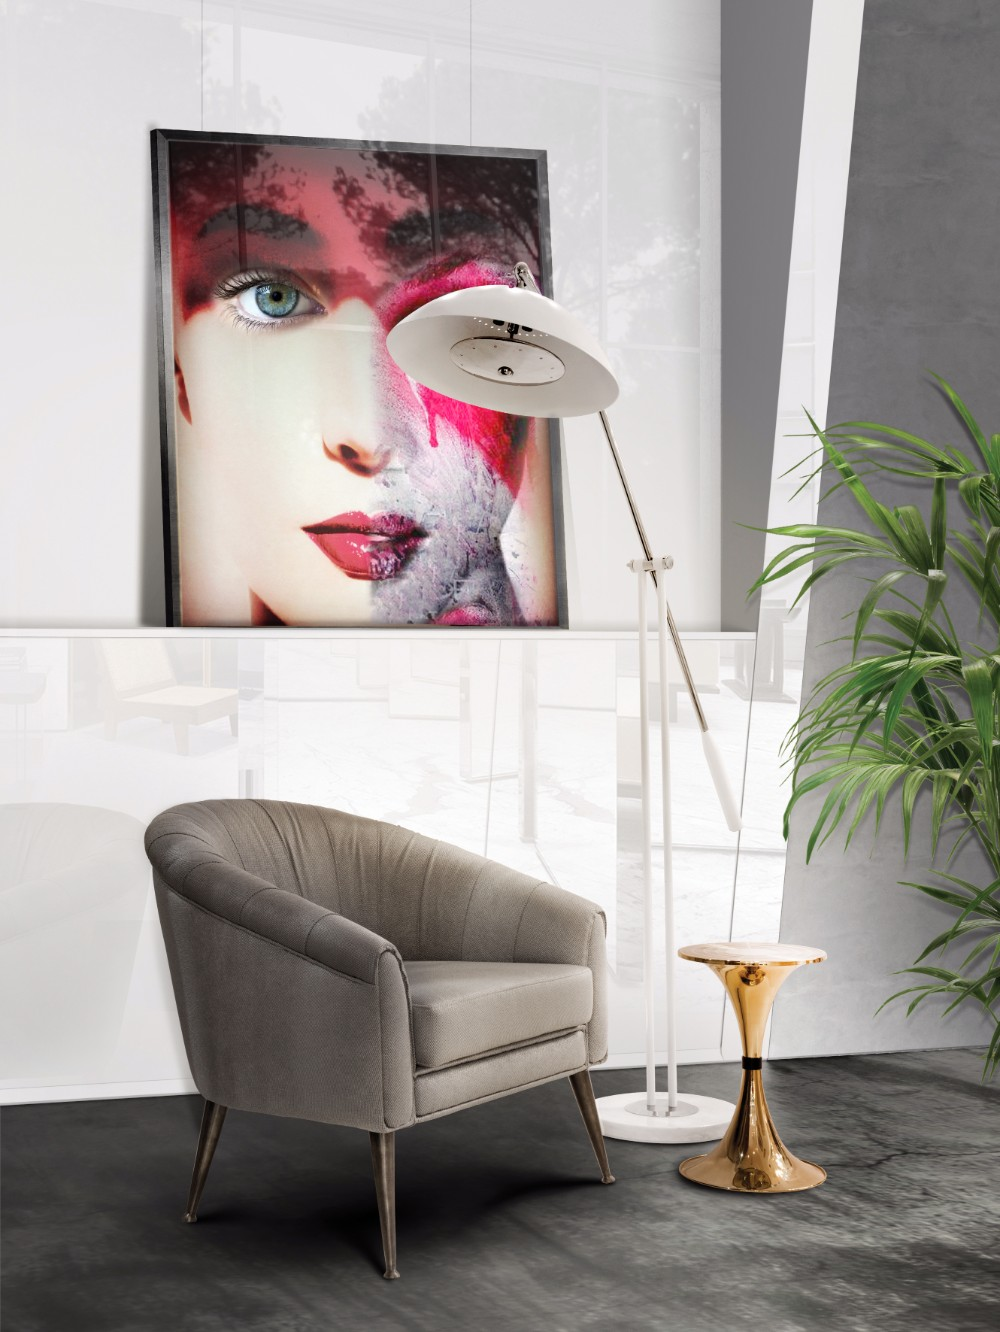 Winter Trends 5 Reasons Why Everyone Love White Floor Lamps 3 white floor lamps Winter Trends: 5 Reasons Why Everyone Love White Floor Lamps Winter Trends 5 Reasons Why Everyone Love White Floor Lamps 3